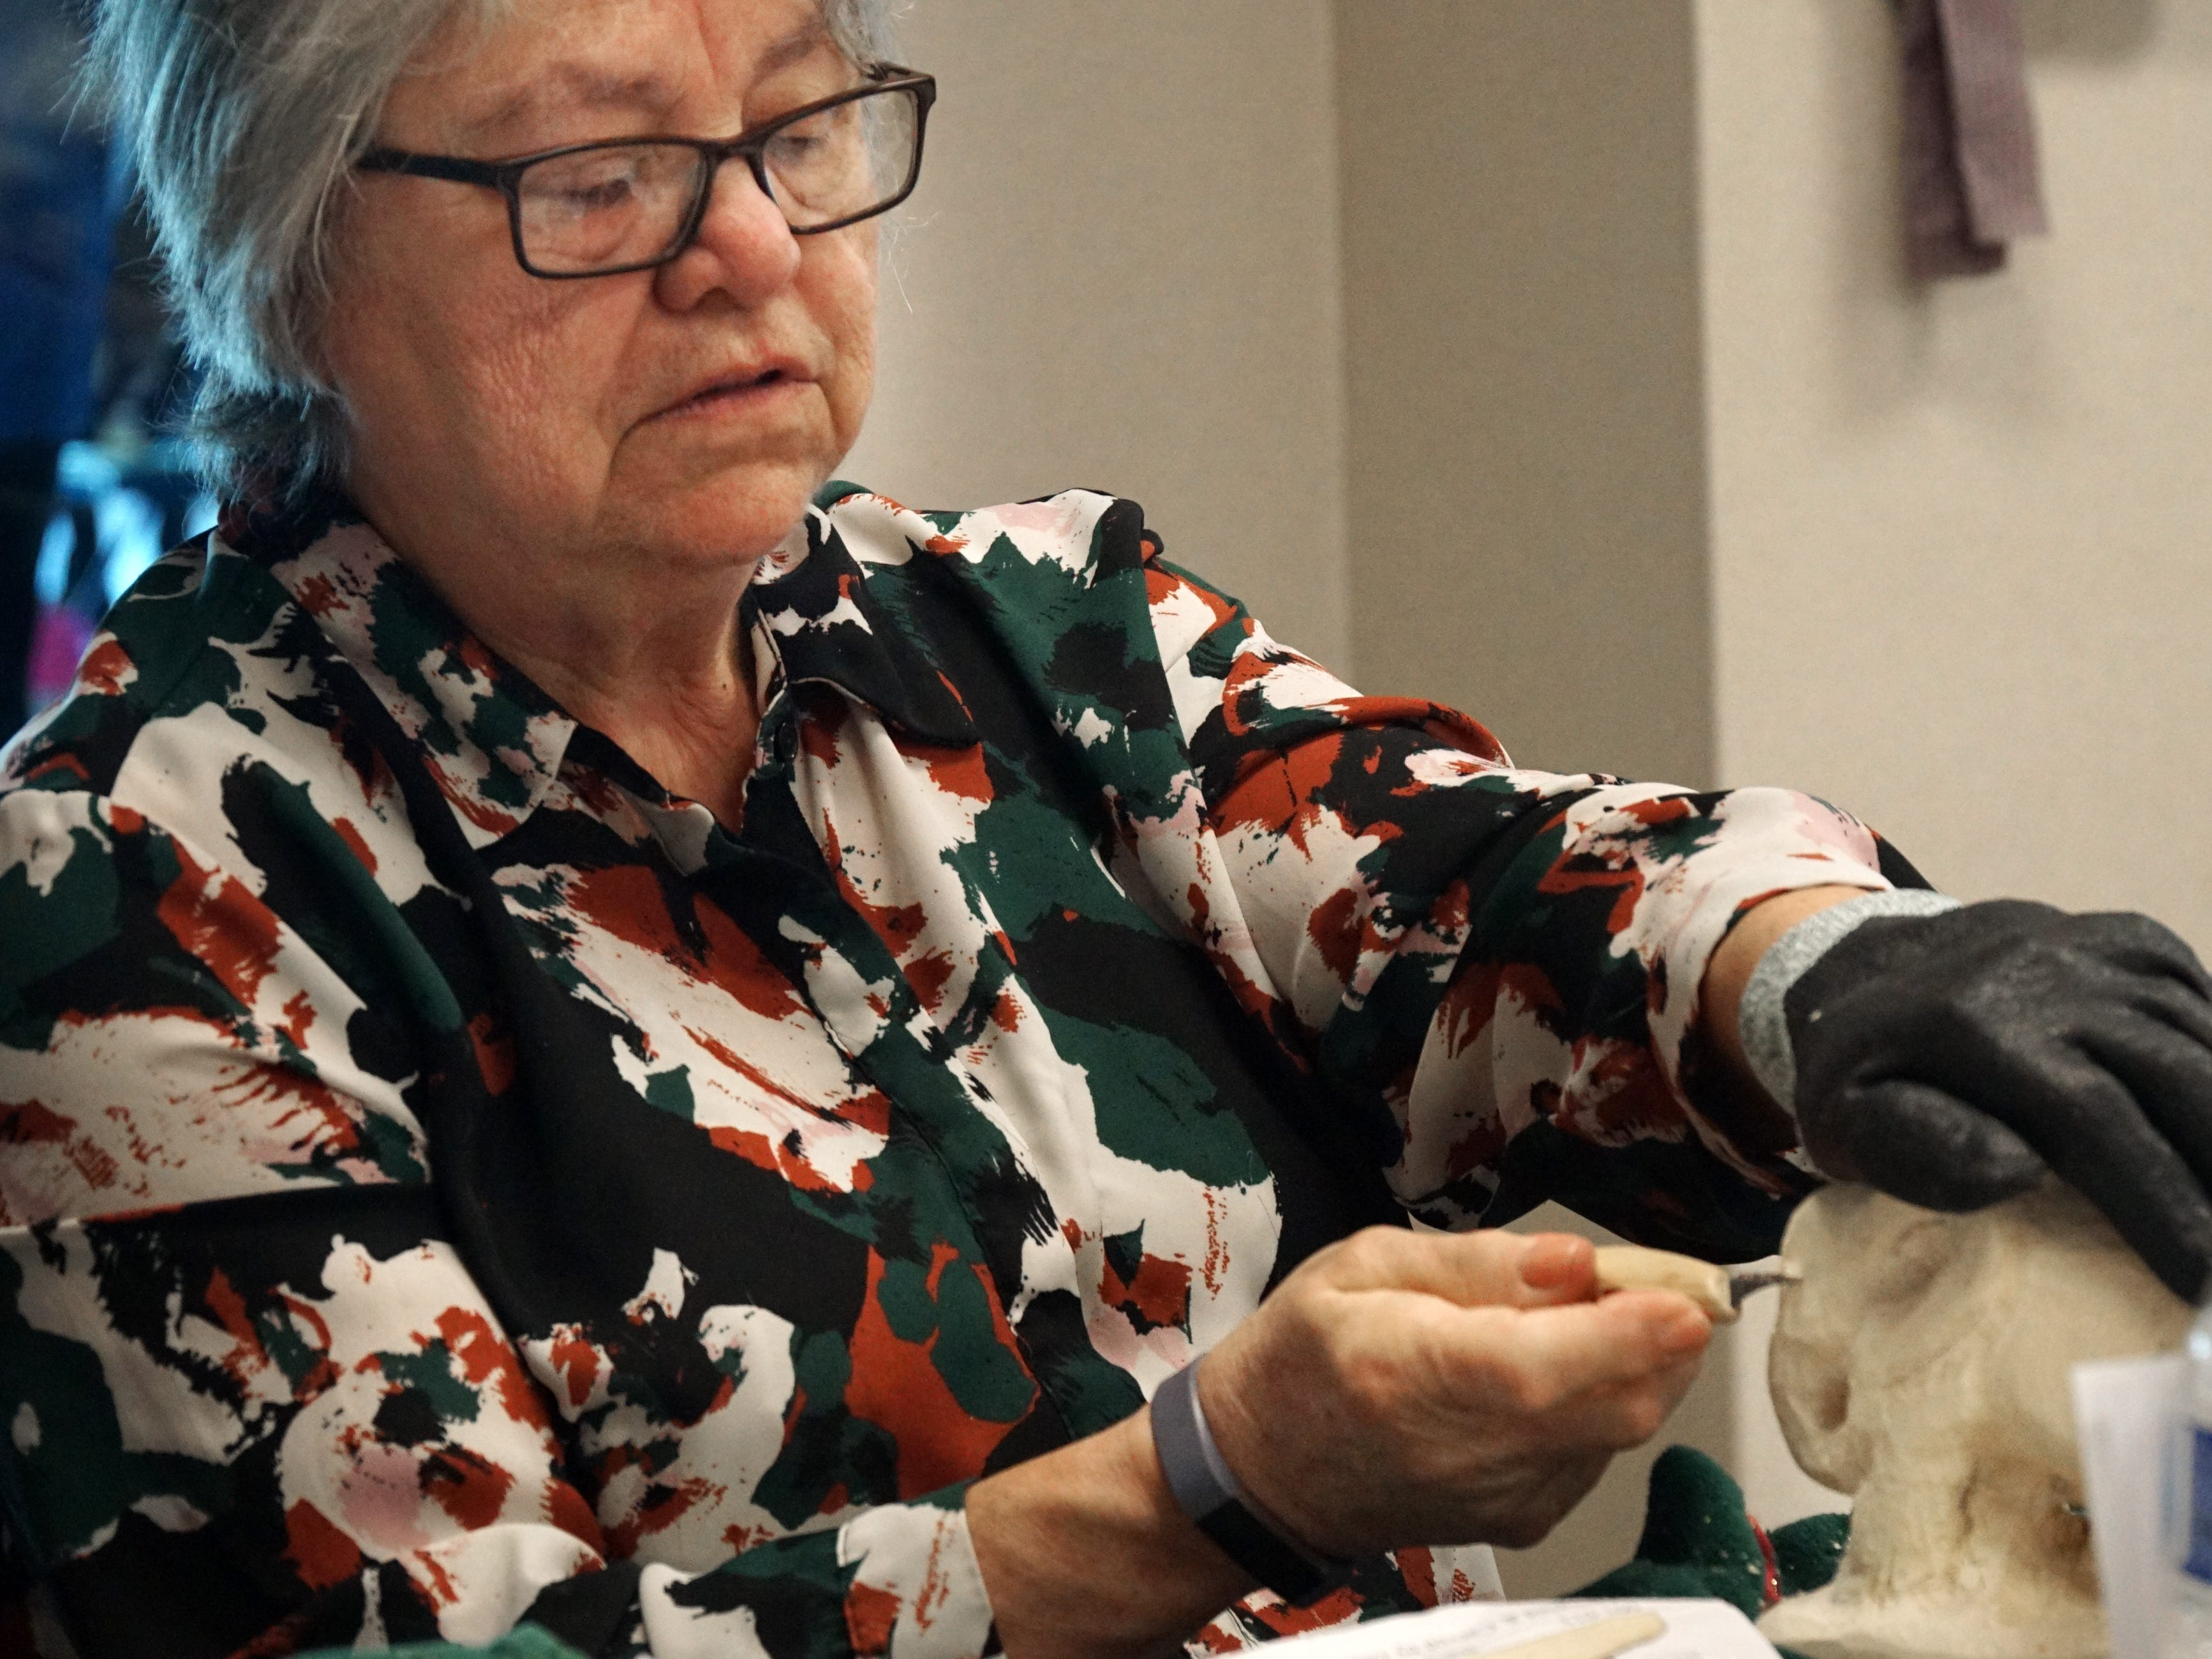 Lucy Hockin works on carving an elephant during the March 25 meeting.